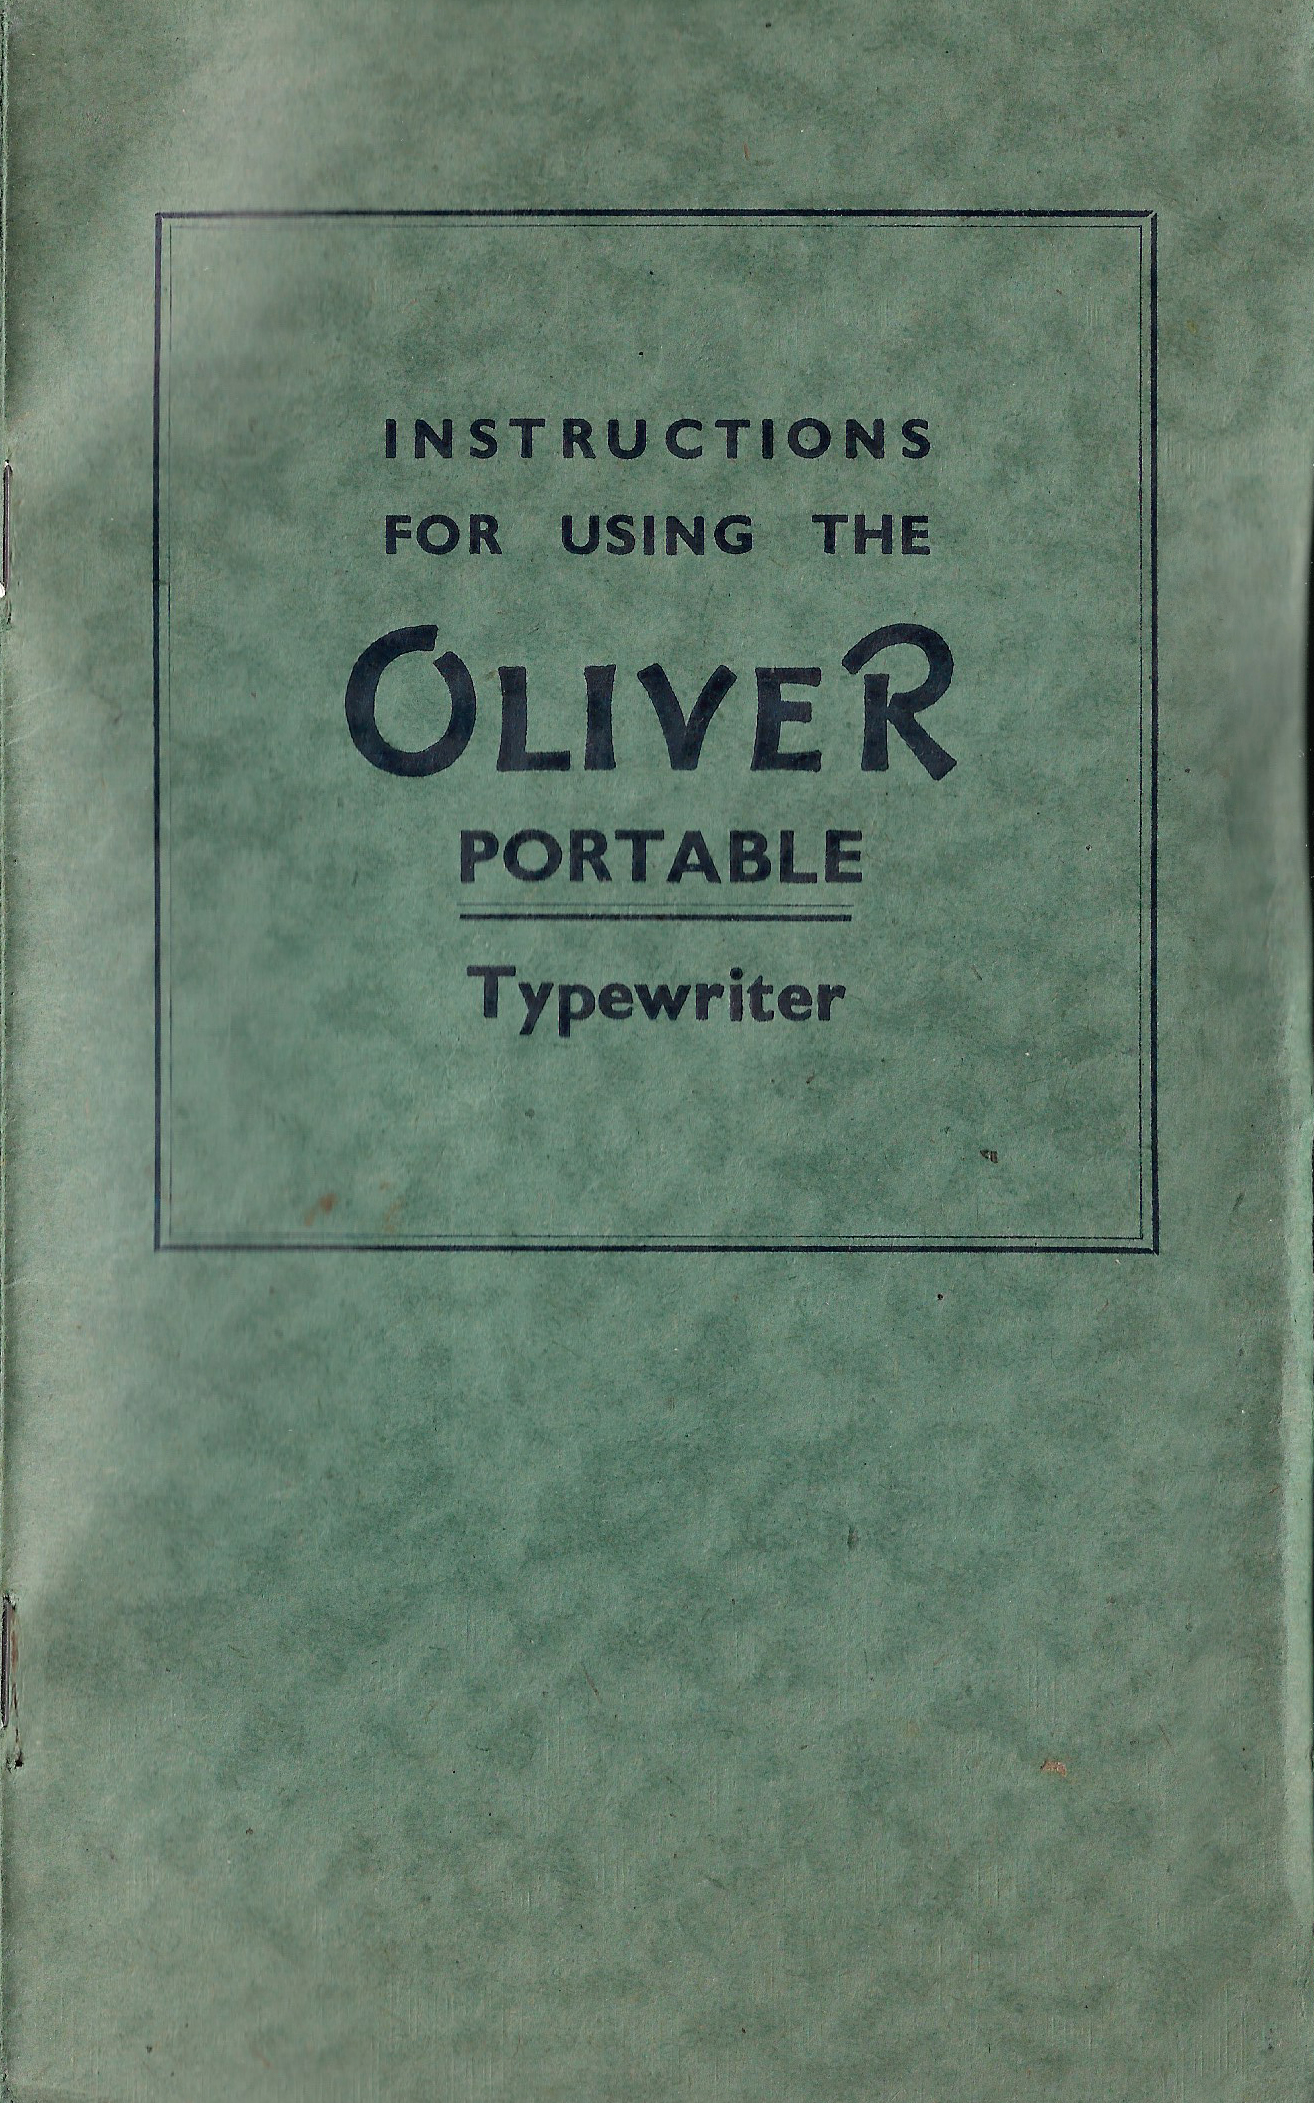 Oliver Portable Instructions